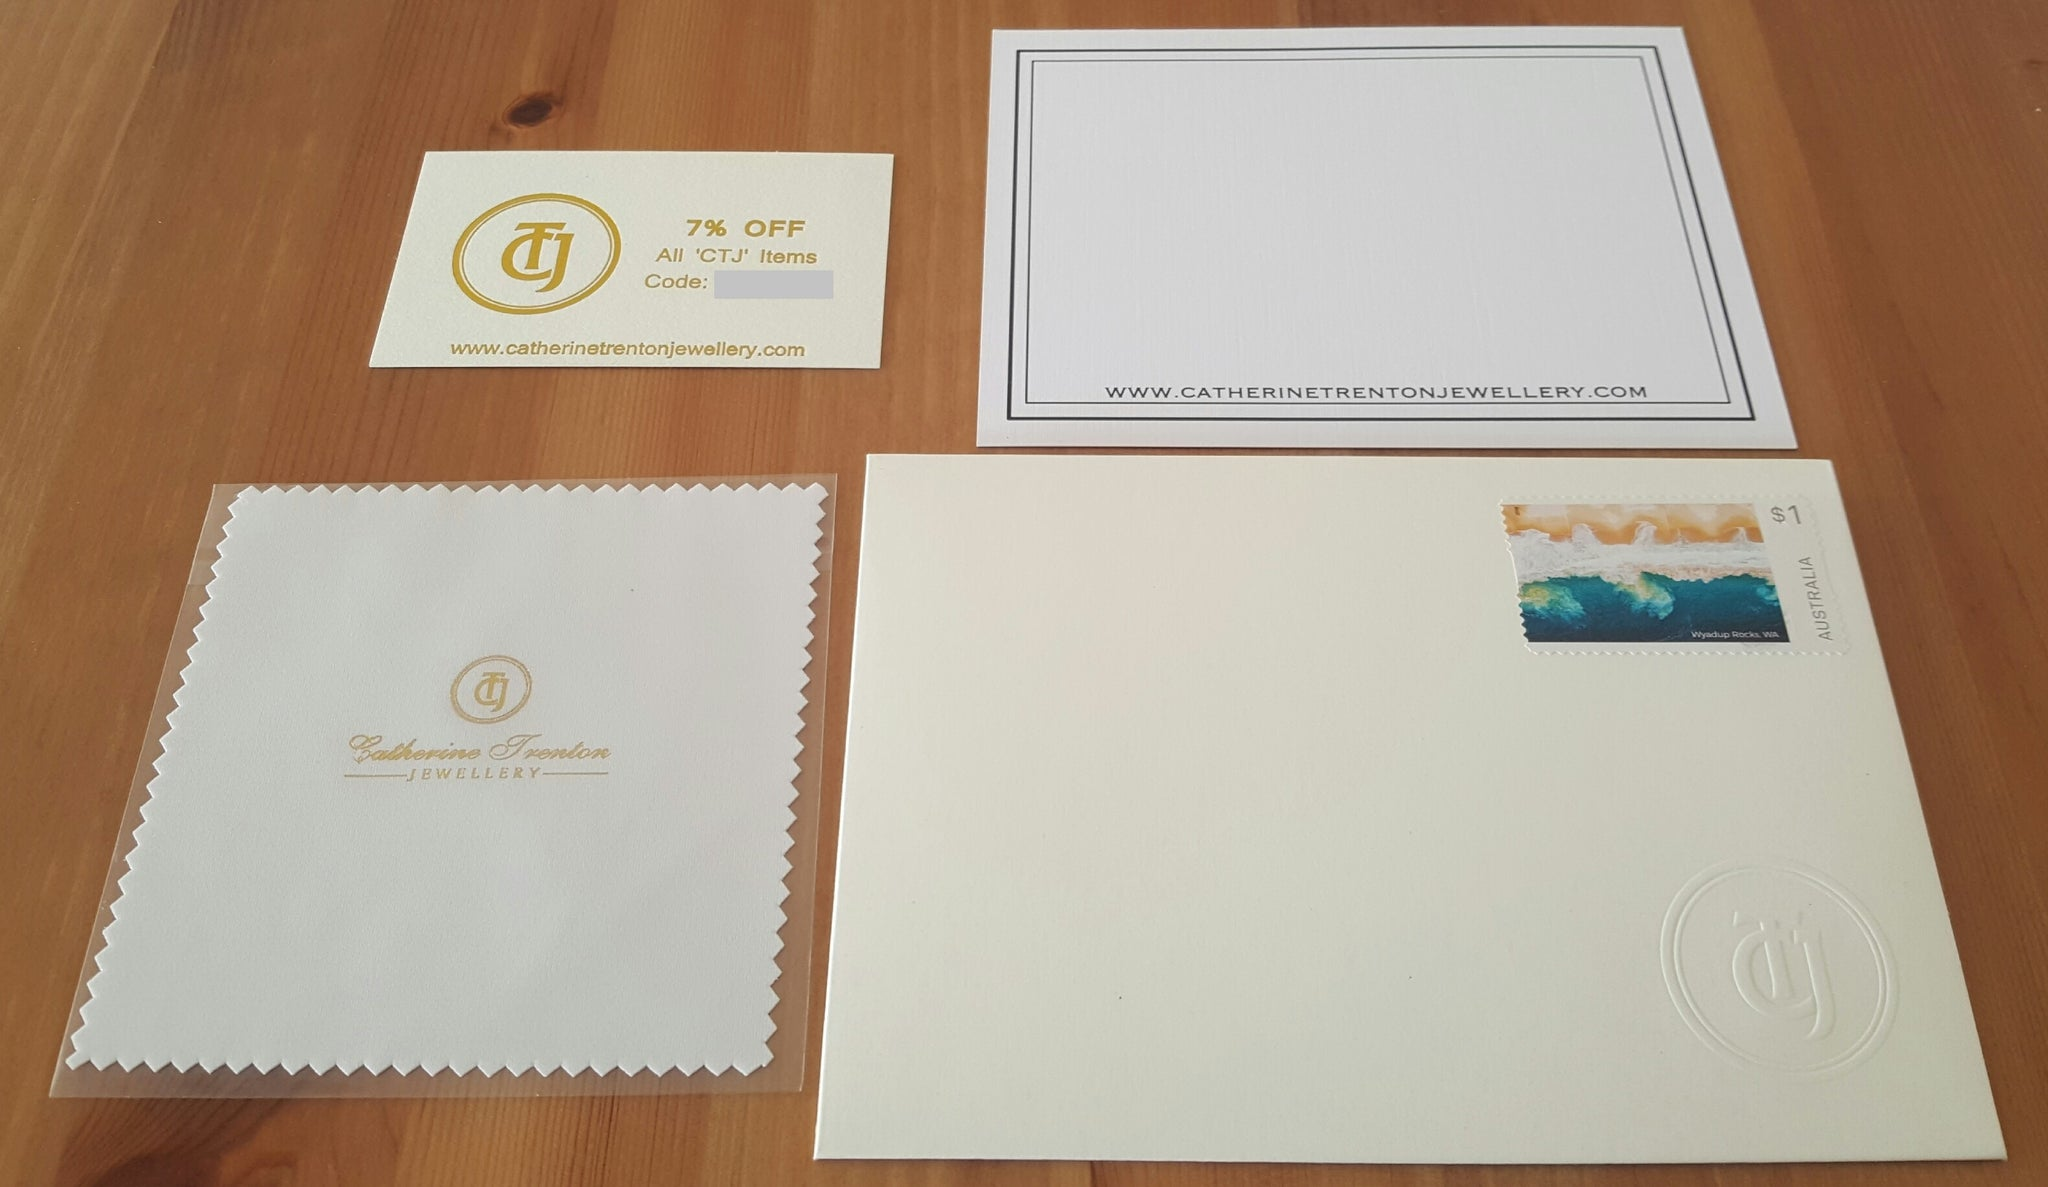 Jewellery Polishing Cloth and Discount Card for all 'CTJ' Pieces